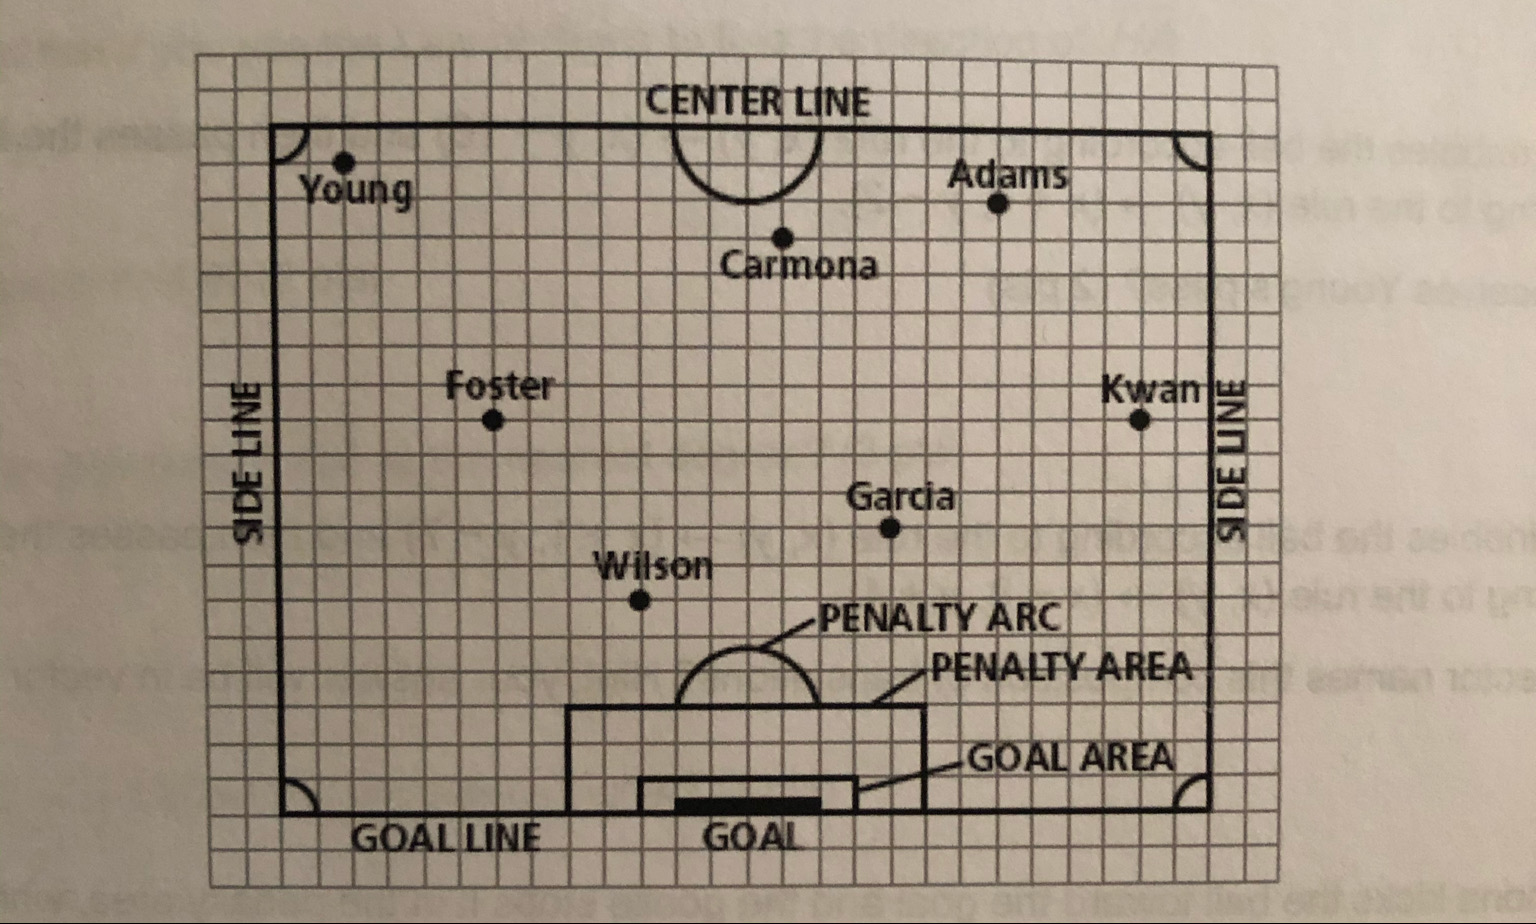 CENTER LINE Adams Young Carmona foster Kwanu Garcia Wilson PENALTY ARC PENALTY AREA GOAL AREA GOAL GOALLINE SIDE LINE SIDE LINE